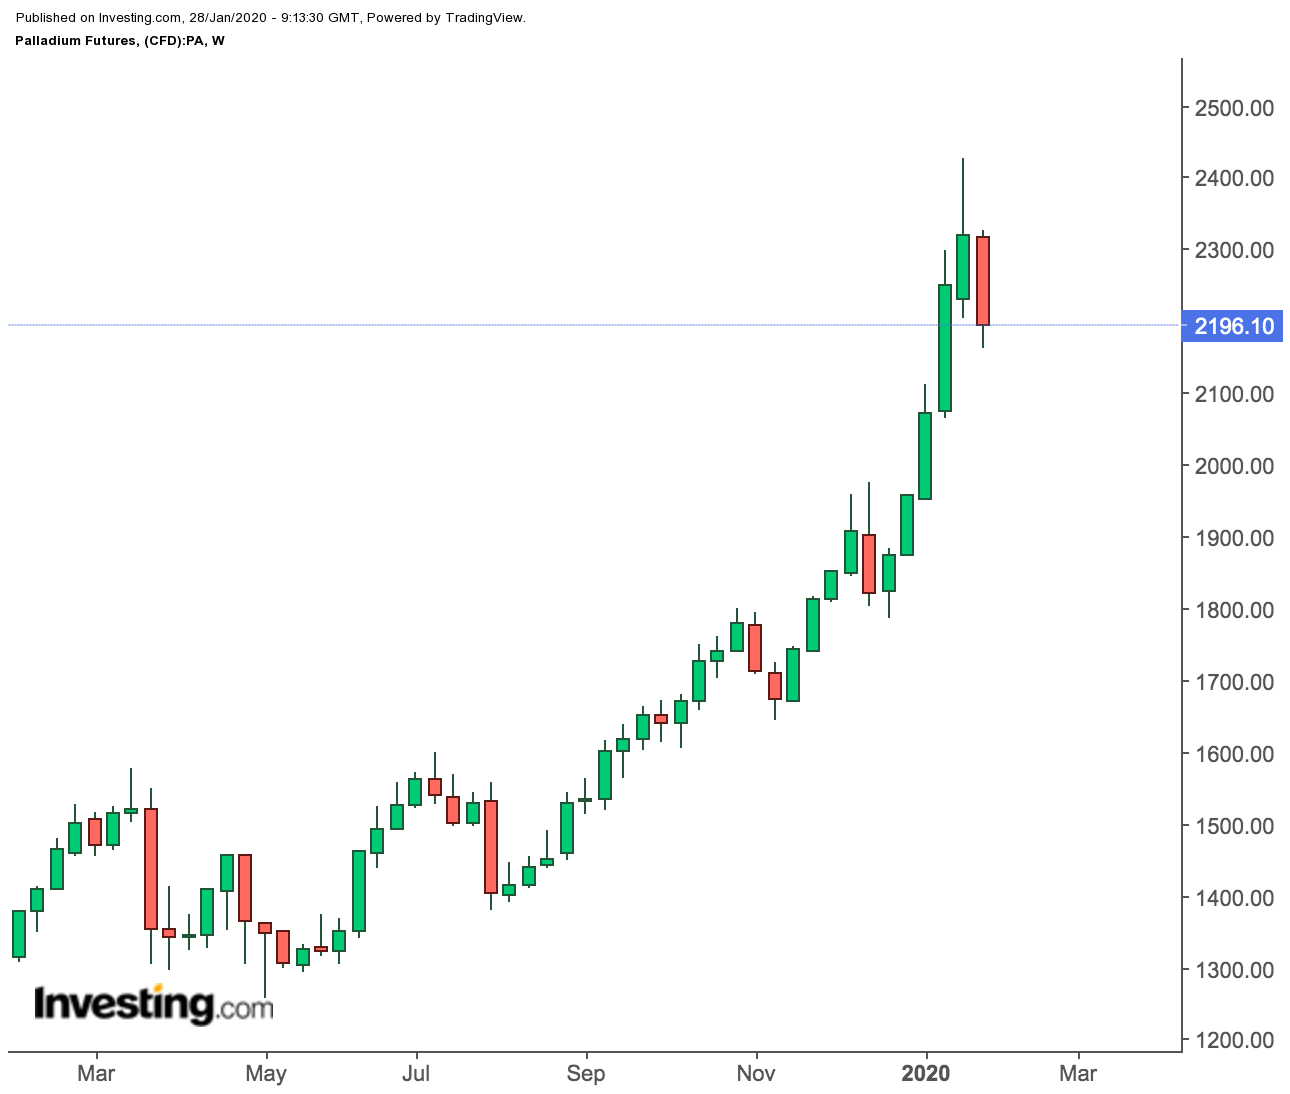 Palladium Futures Weekly Prices